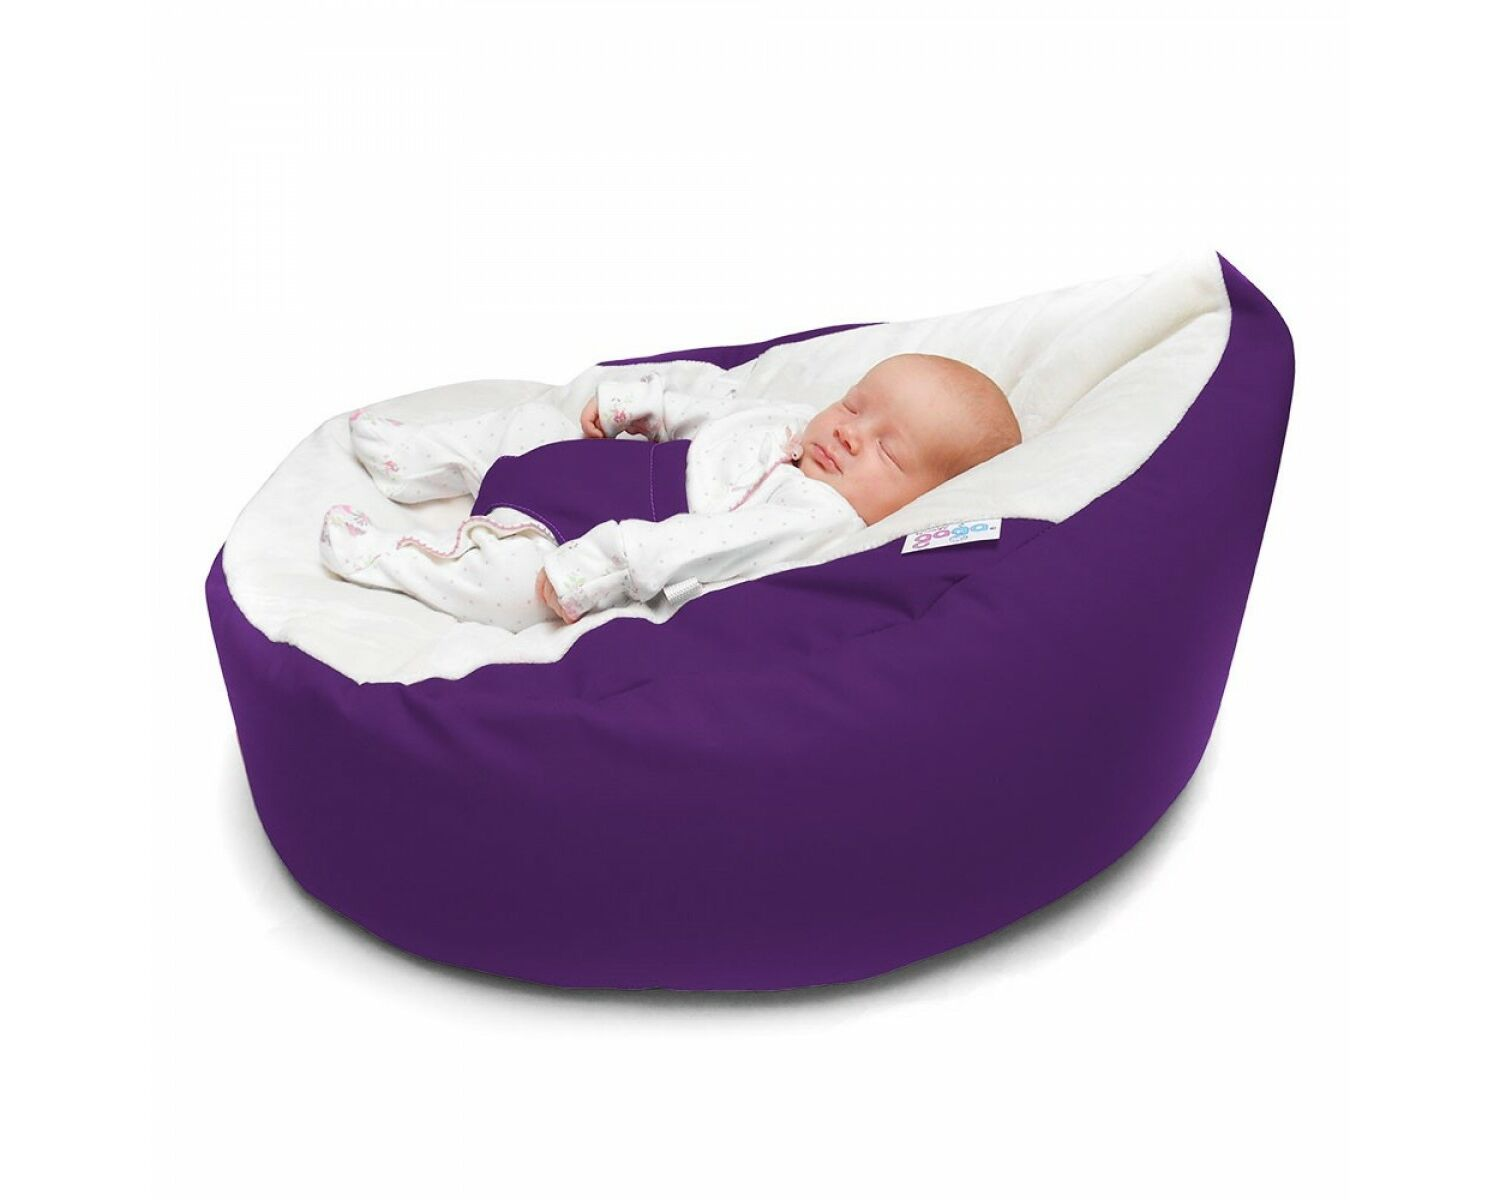 Phenomenal Gaga Vivid Purple Soft And Comfortable Baby Bean Bag Seat Gmtry Best Dining Table And Chair Ideas Images Gmtryco